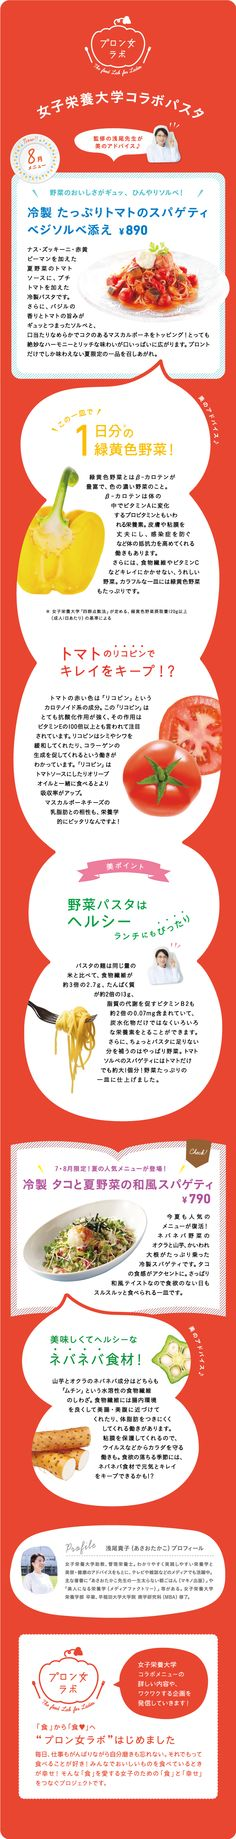 Pronto Pasta of August 2014: Joshieiyodai collaboration pasta green and yellow vegetables of one day can consume in one dish